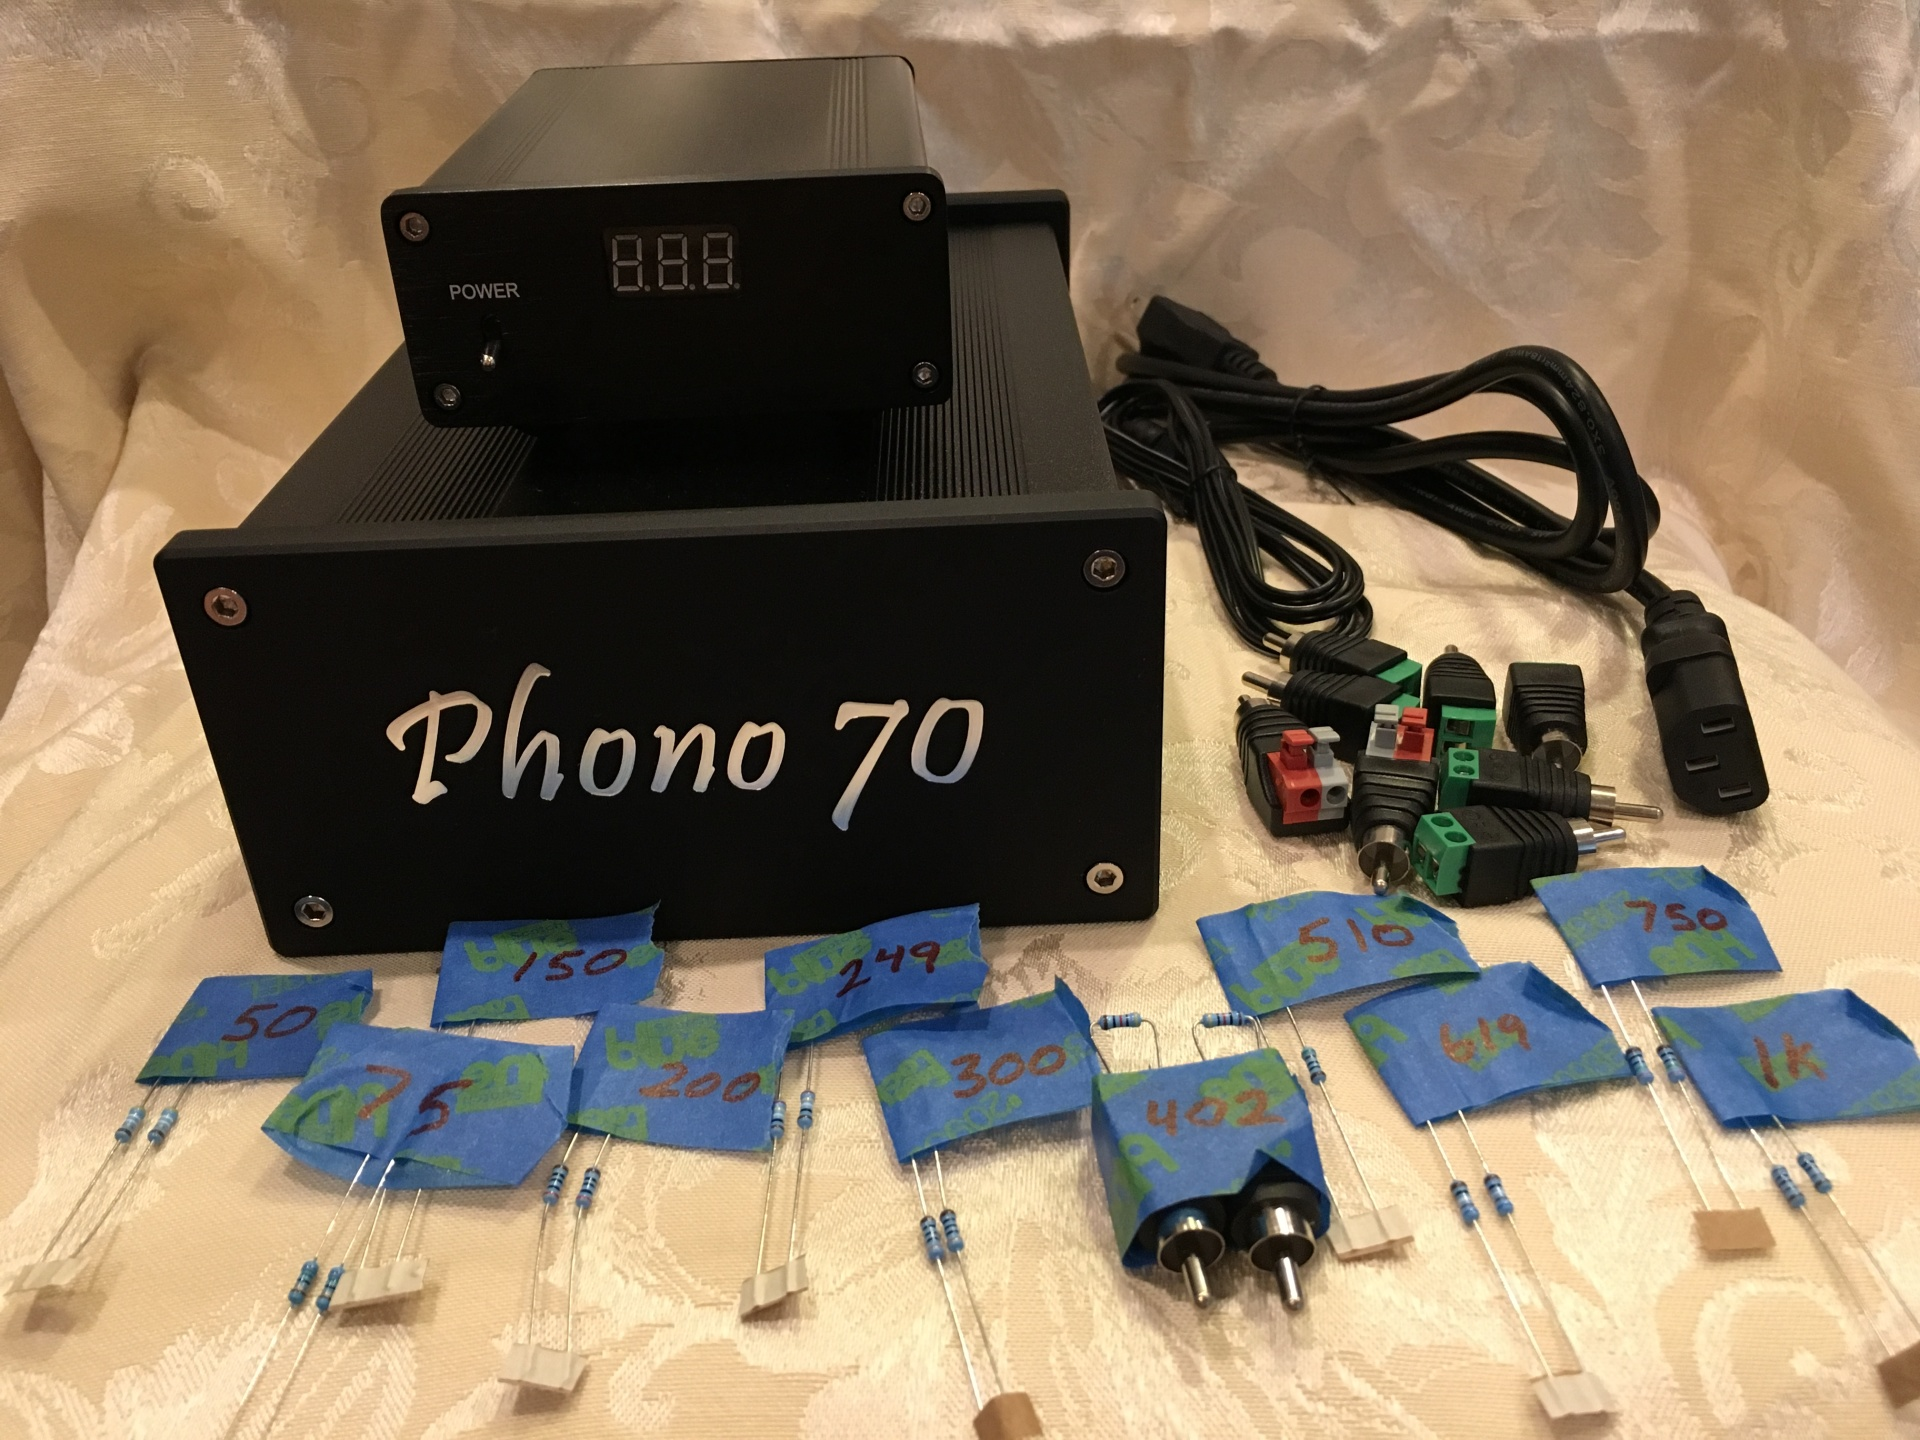 Introducing the Paradox Phono 70